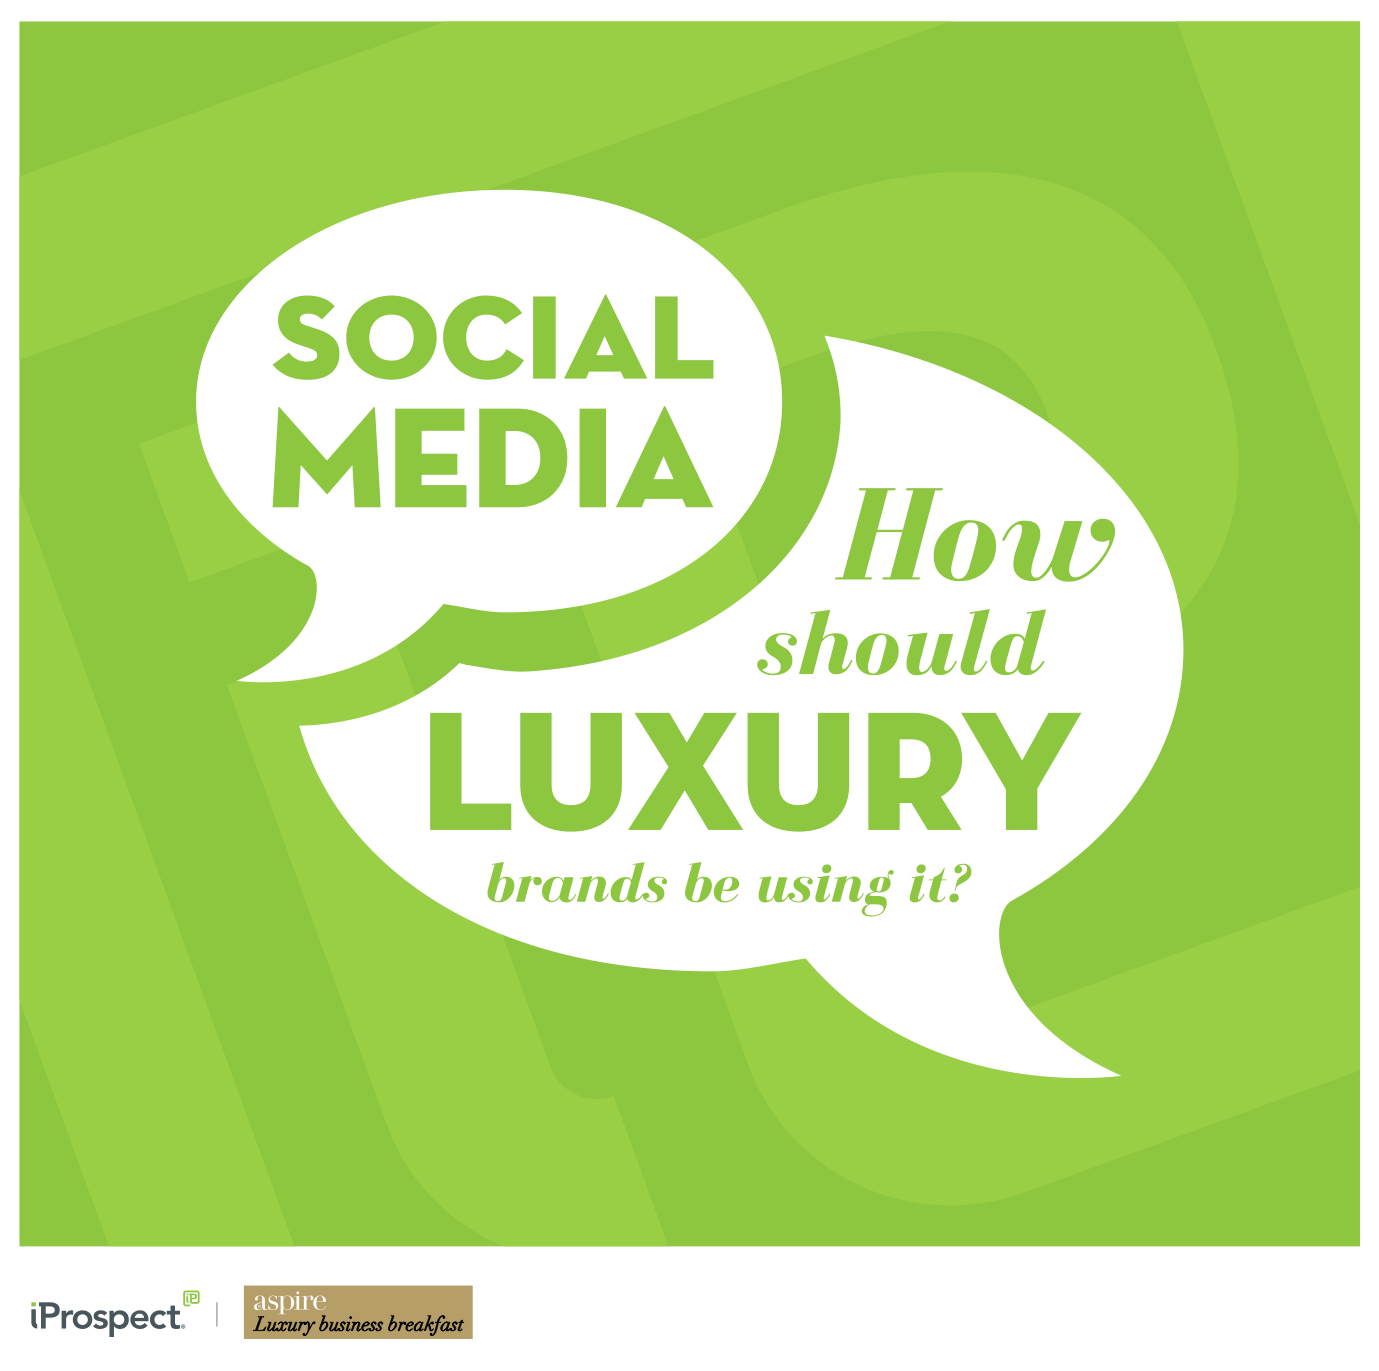 Social media: how should luxury brands be doing it?